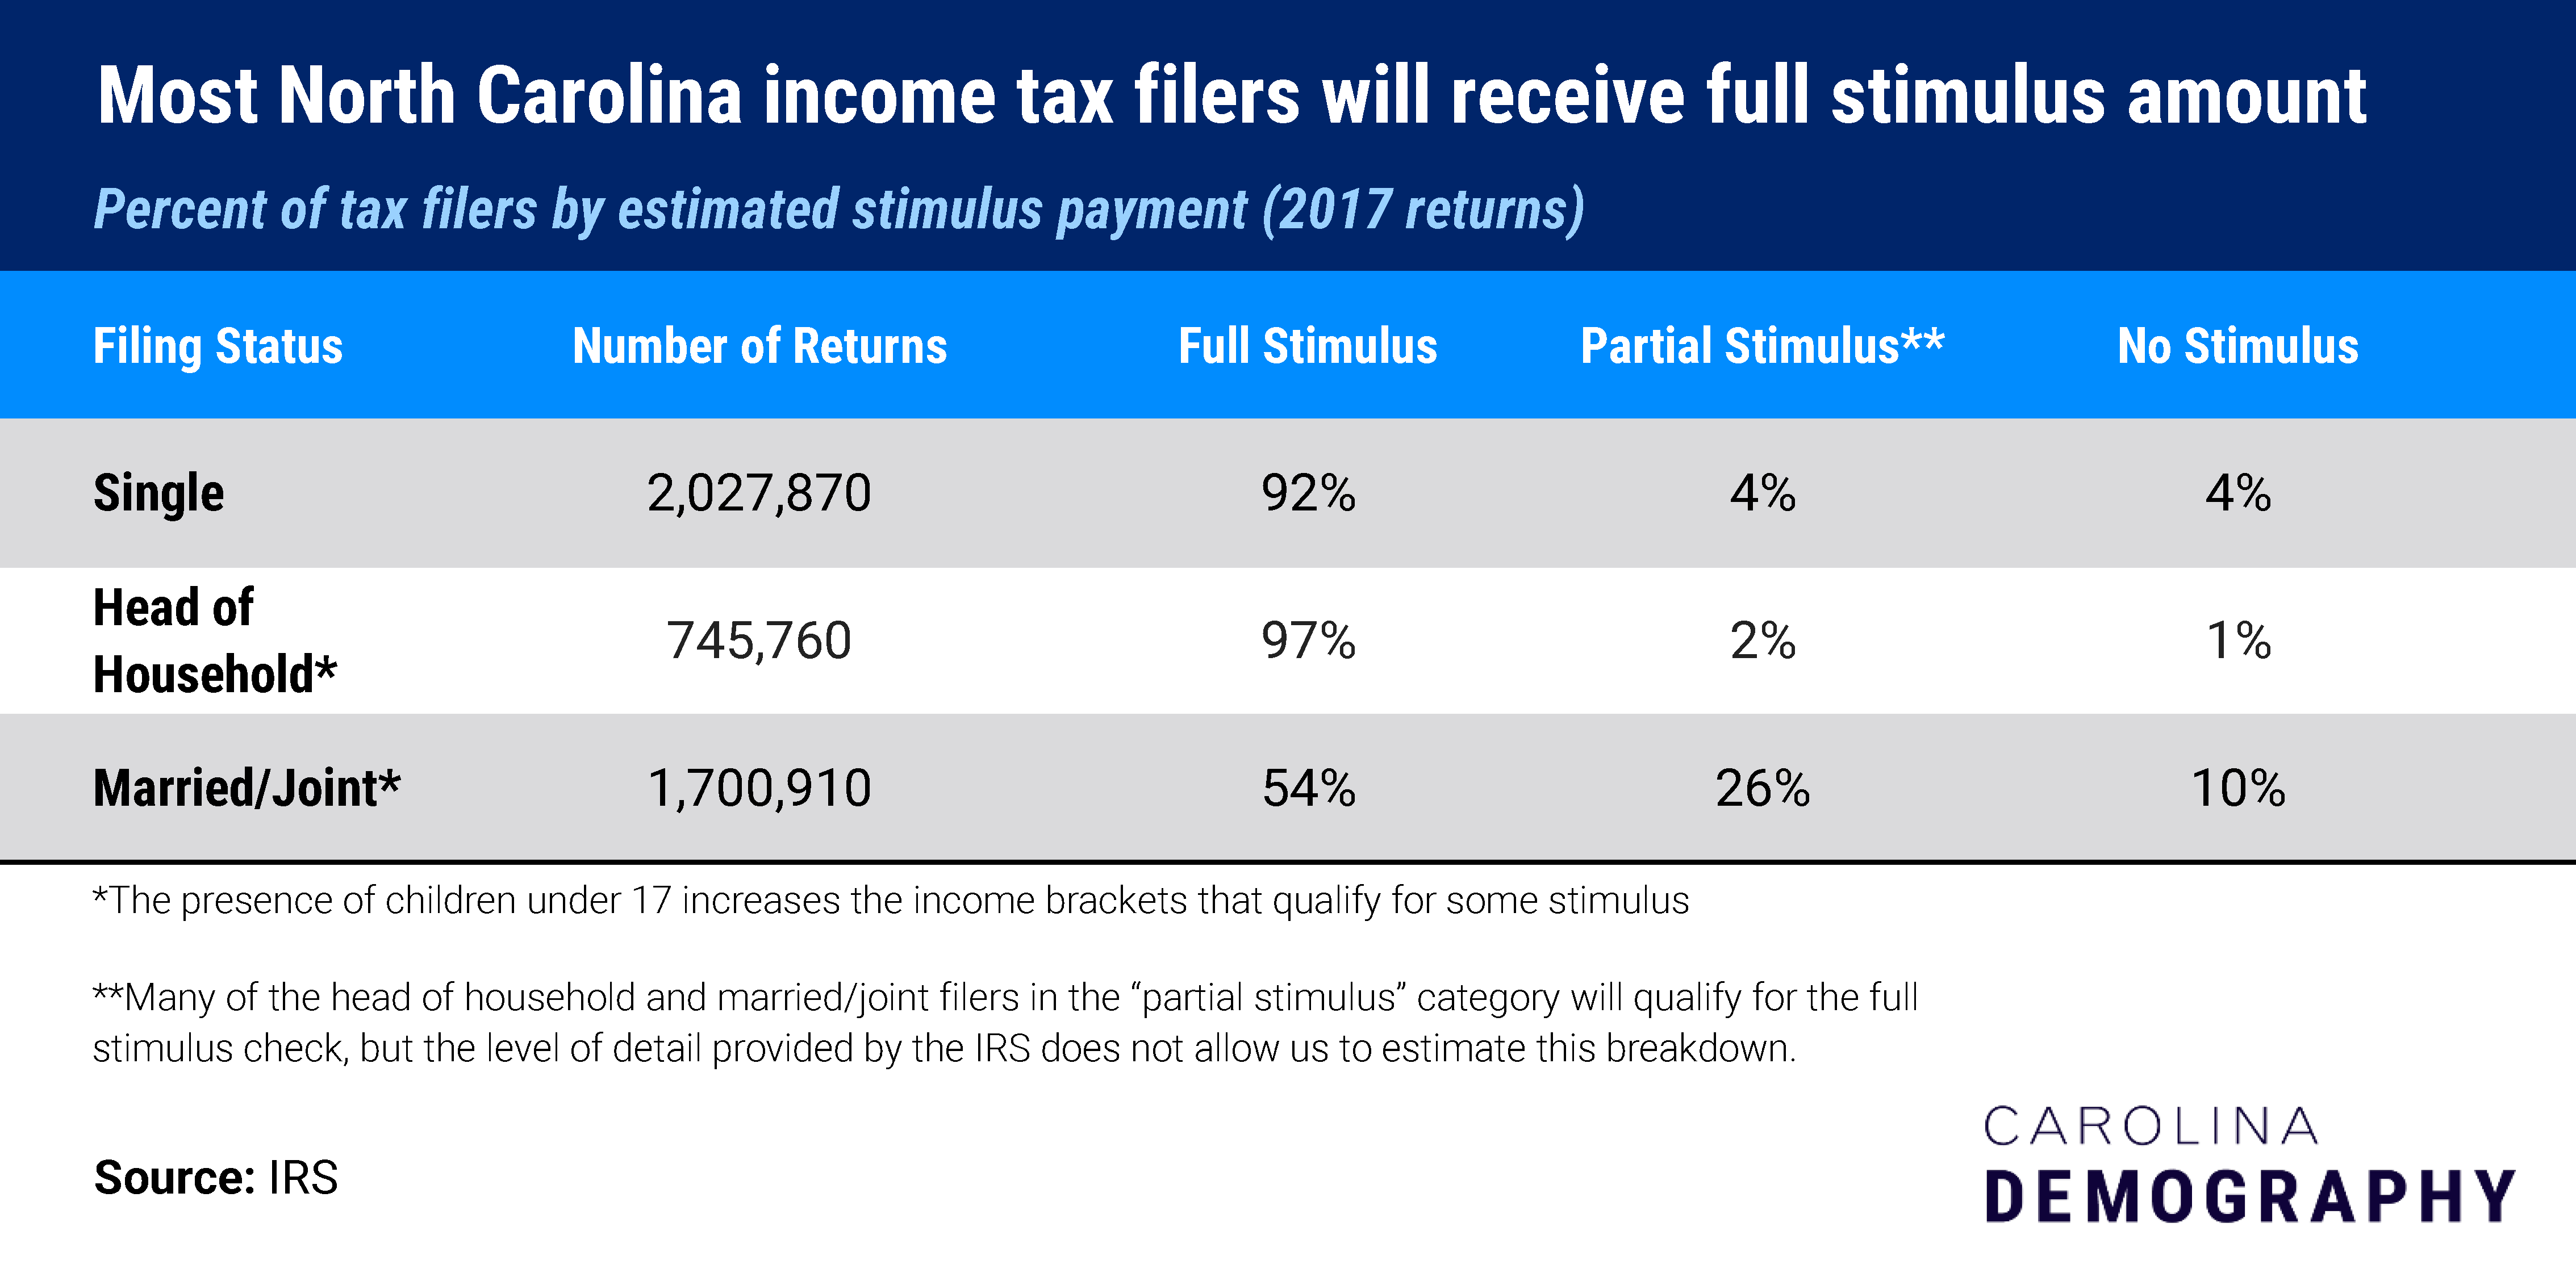 "Table Title: Most North Carolina income tax filers will receive full stimulus amount Table subtitle: Percent of tax filers by estimated stimulus payment (2017 returns) Filing Status Number of Returns Full Stimulus Partial Stimulus** No Stimulus Single 2,027,870 92% 4% 4% Head of Household* 745,760 97% 2% 1% Married/Joint* 1,700,910 54% 26% 10% *The presence of children under 17 increases the income brackets that qualify for some stimulus **Many of the head of household and married/joint filers in the ""partial stimulus"" category will qualify for the full stimulus check, but the level of detail provided by the IRS does not allow us to estimate this breakdown. Source: IRS"